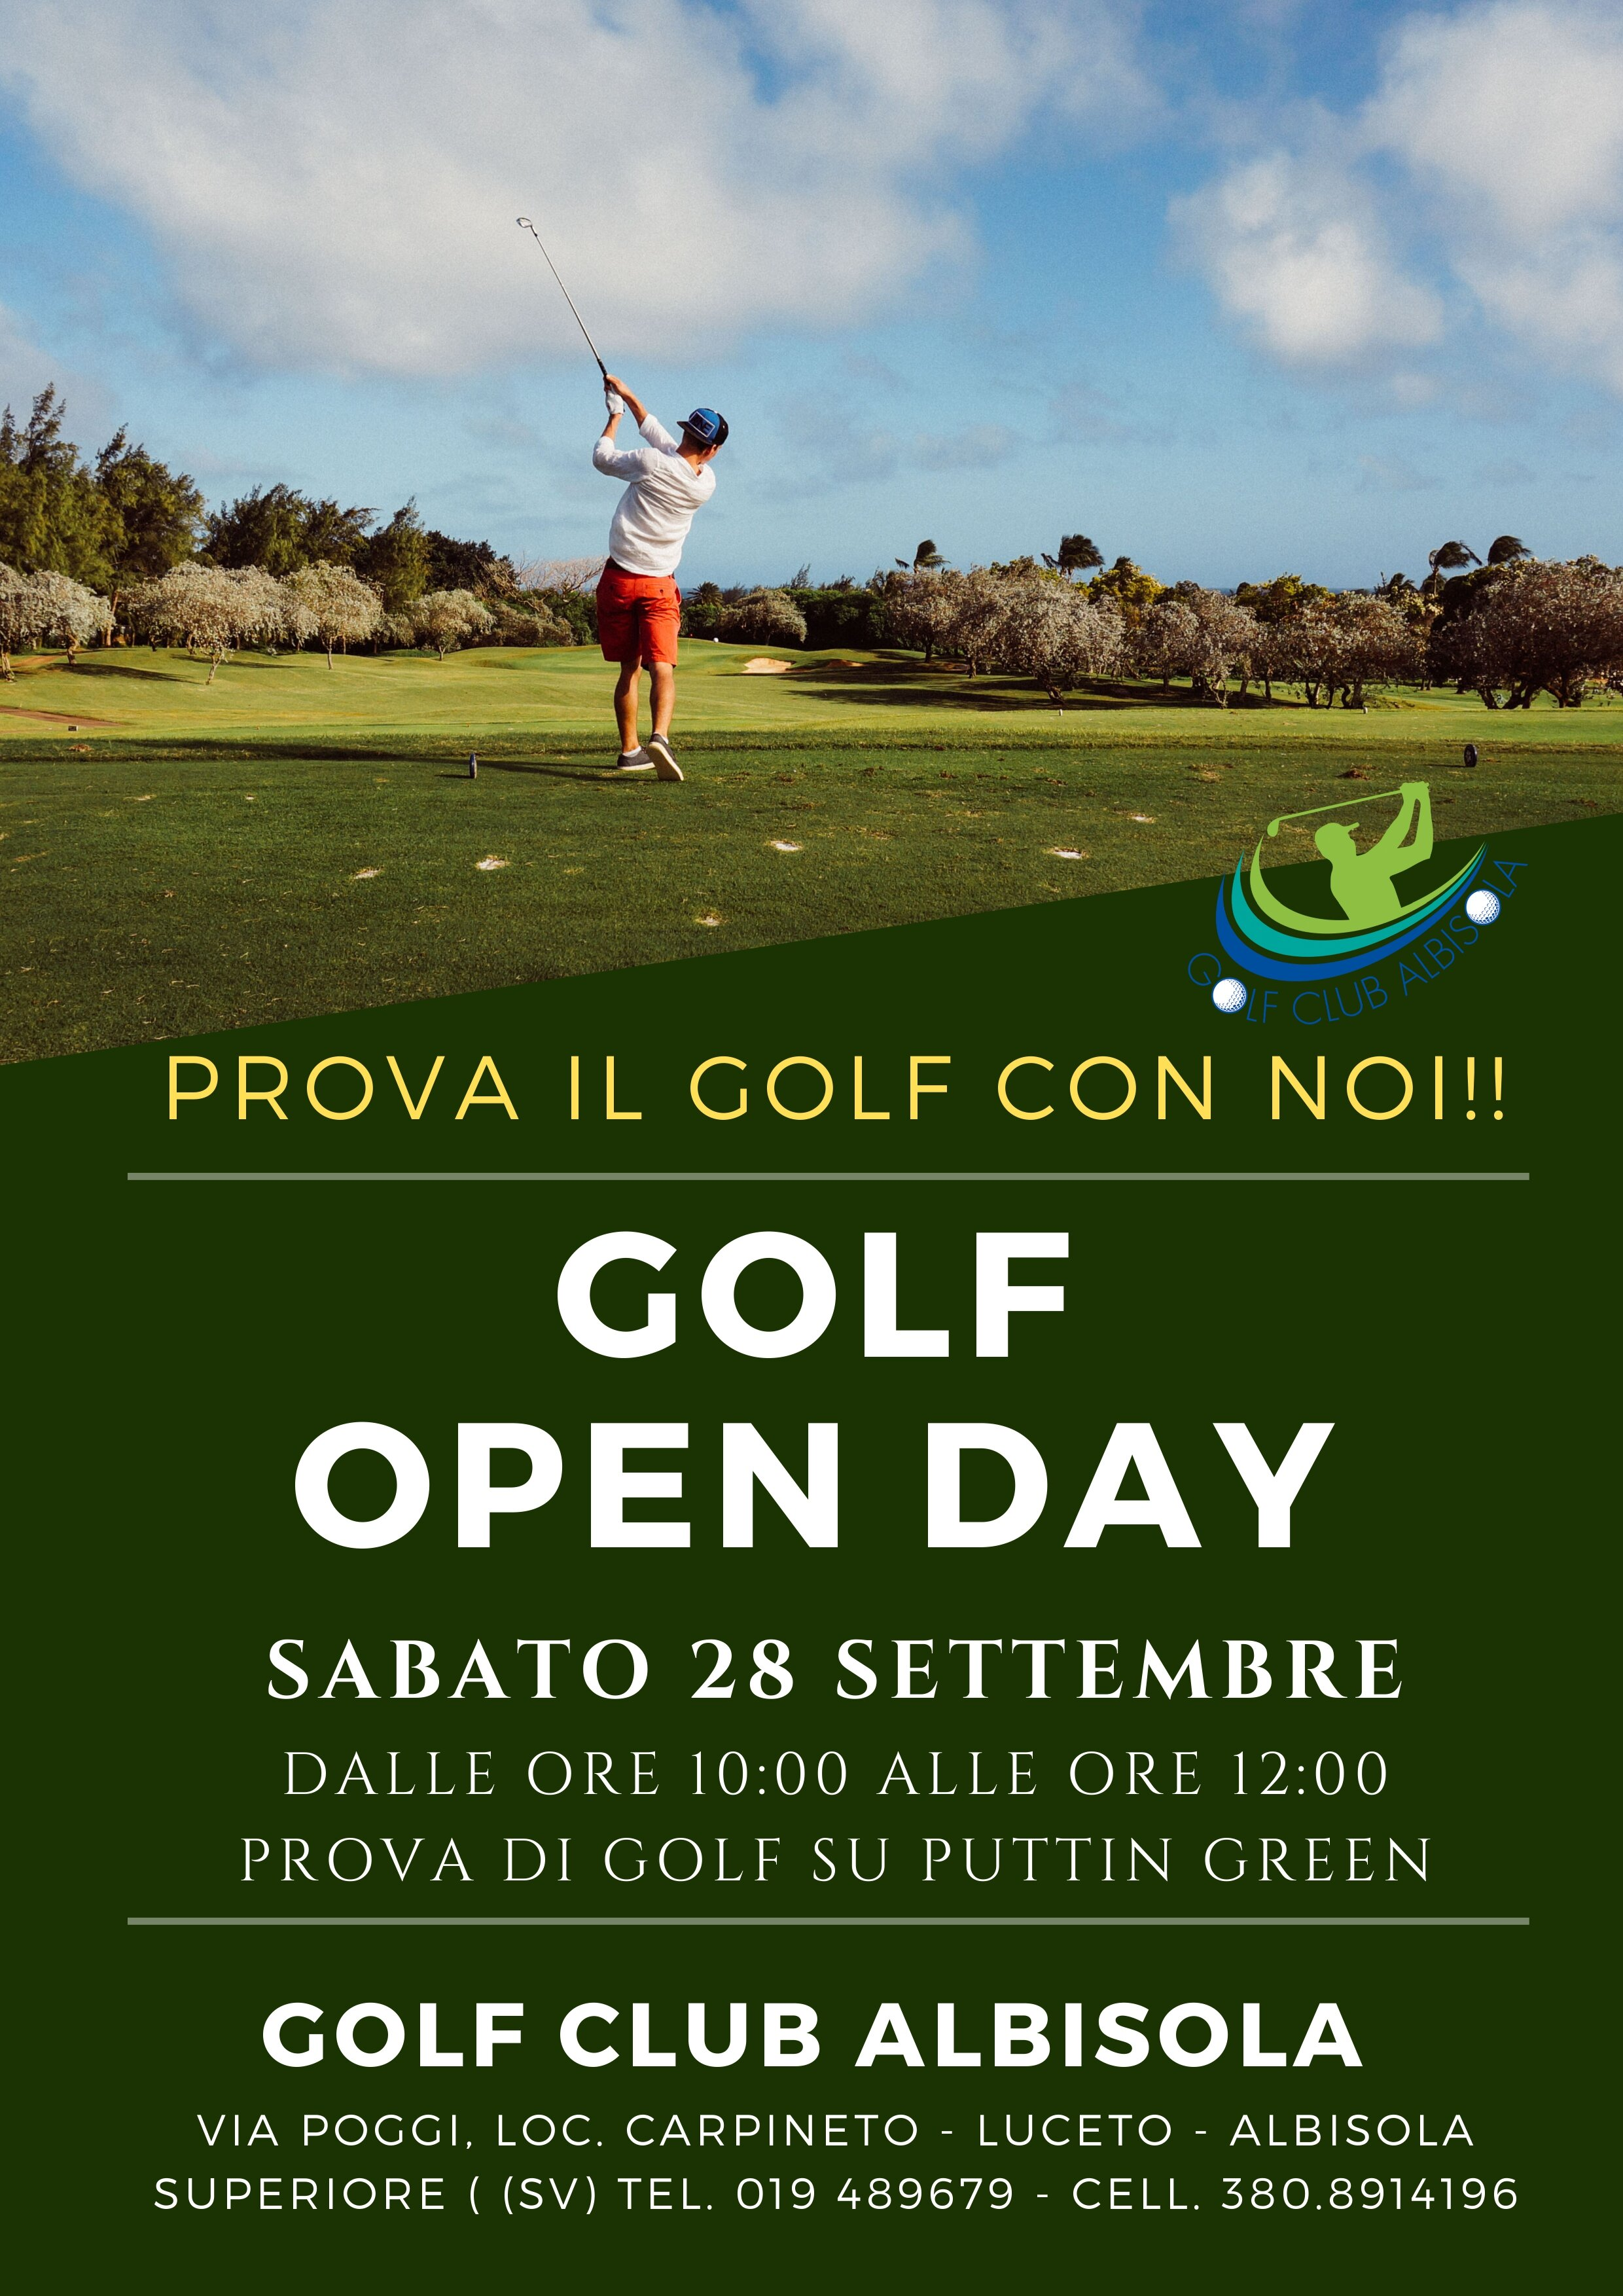 golf open day_page-0001.jpg